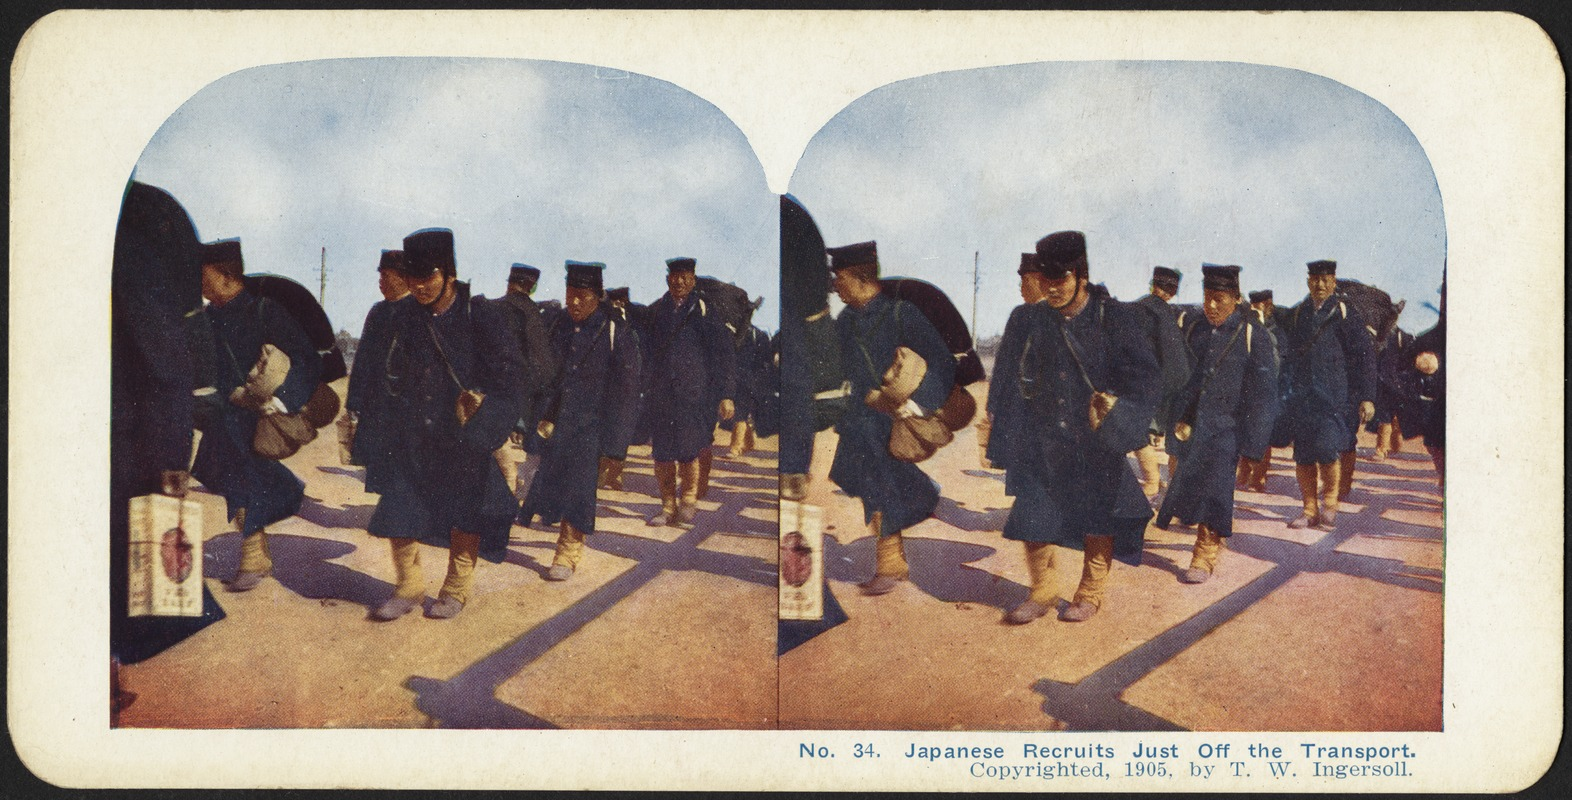 Japanese recruits just off the transports